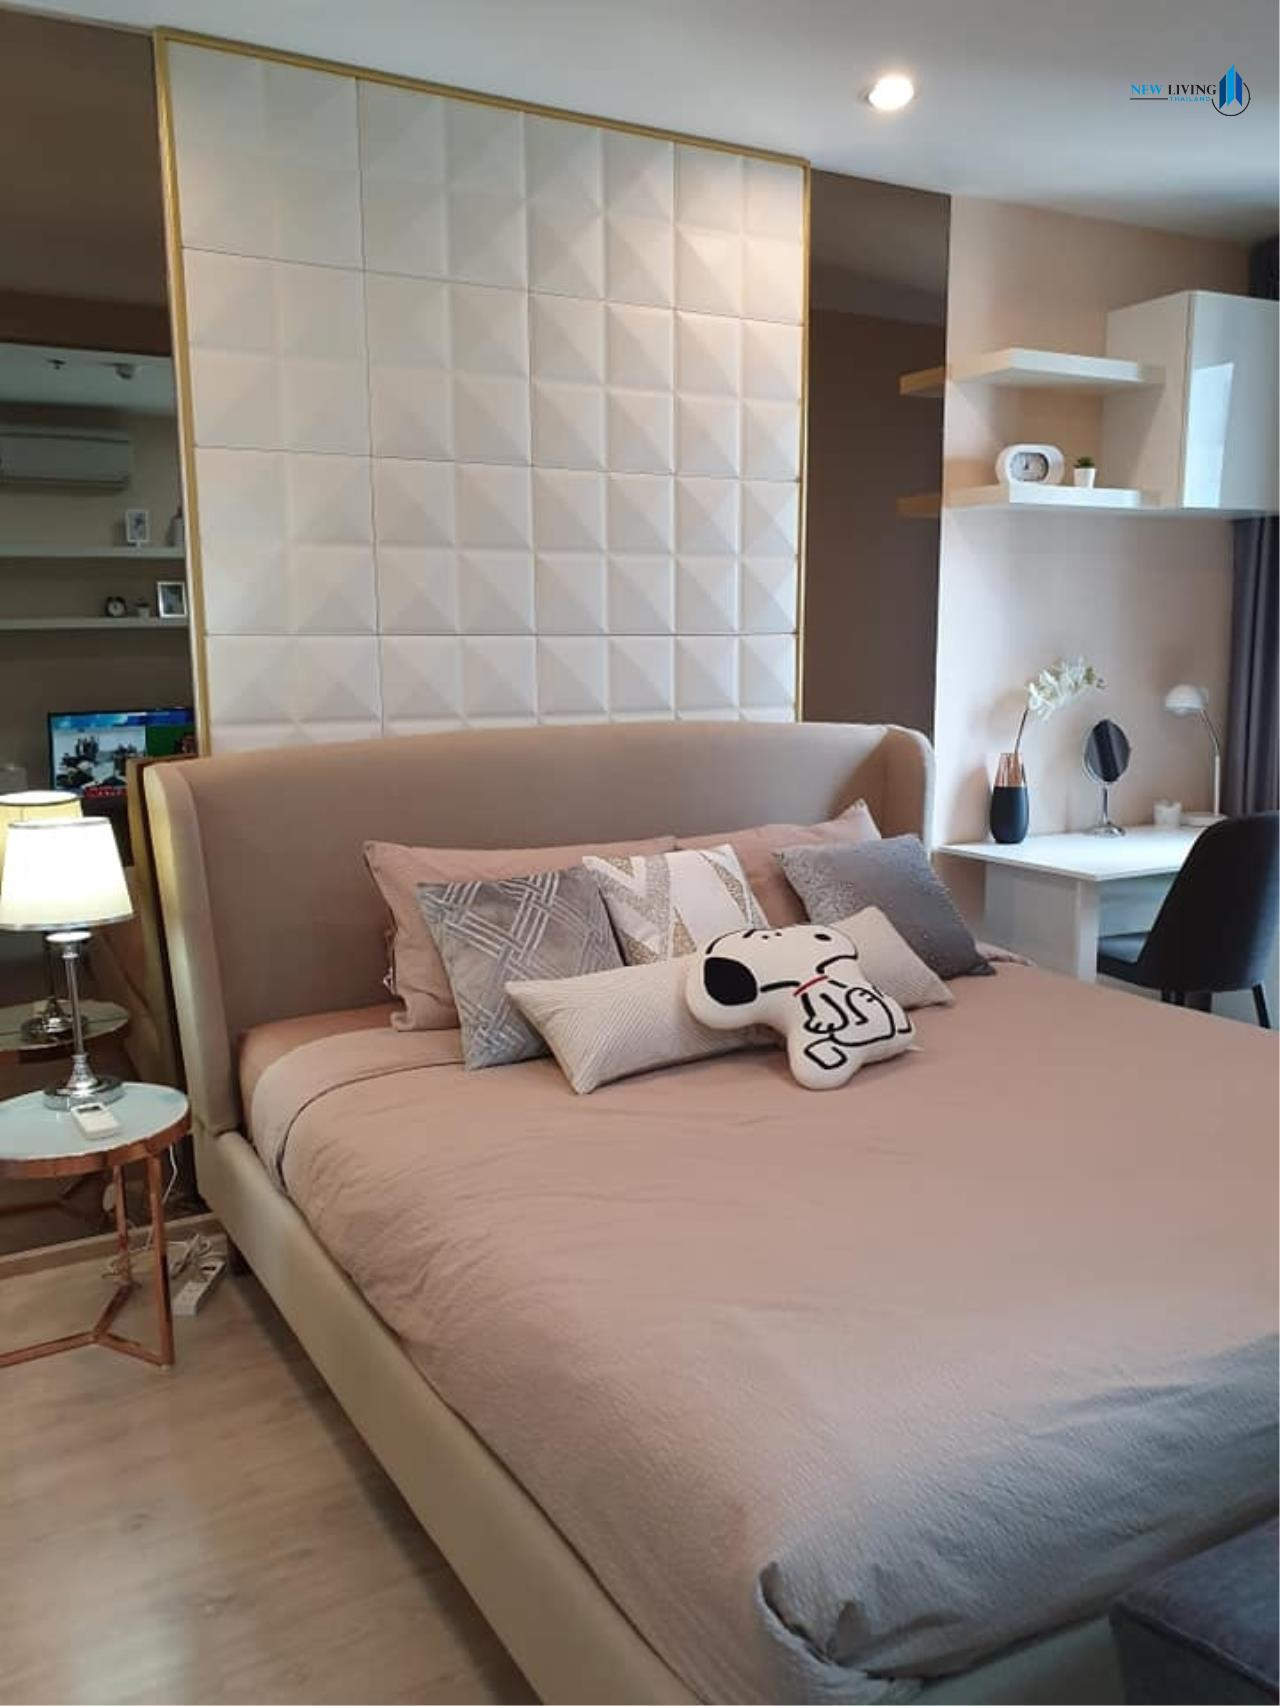 New Living Thailand Agency's +++ Urgent rent !! +++ Ideo Q Chula Samyan, fully furnished 1 bedroom , 33 sq.m.,+++ 1